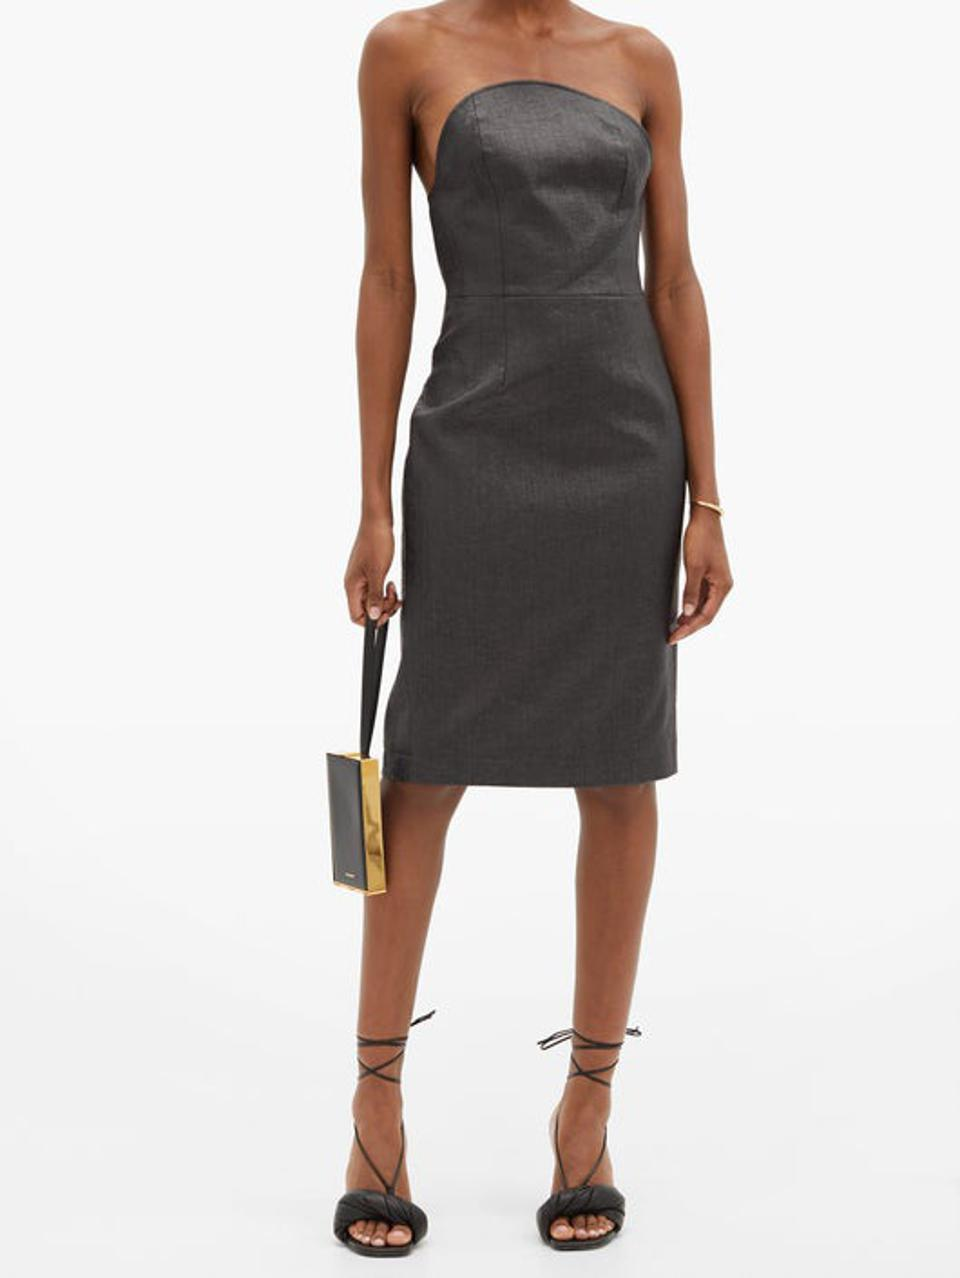 Lady Godiva Coated-Linen Bustier Dress by Duncan